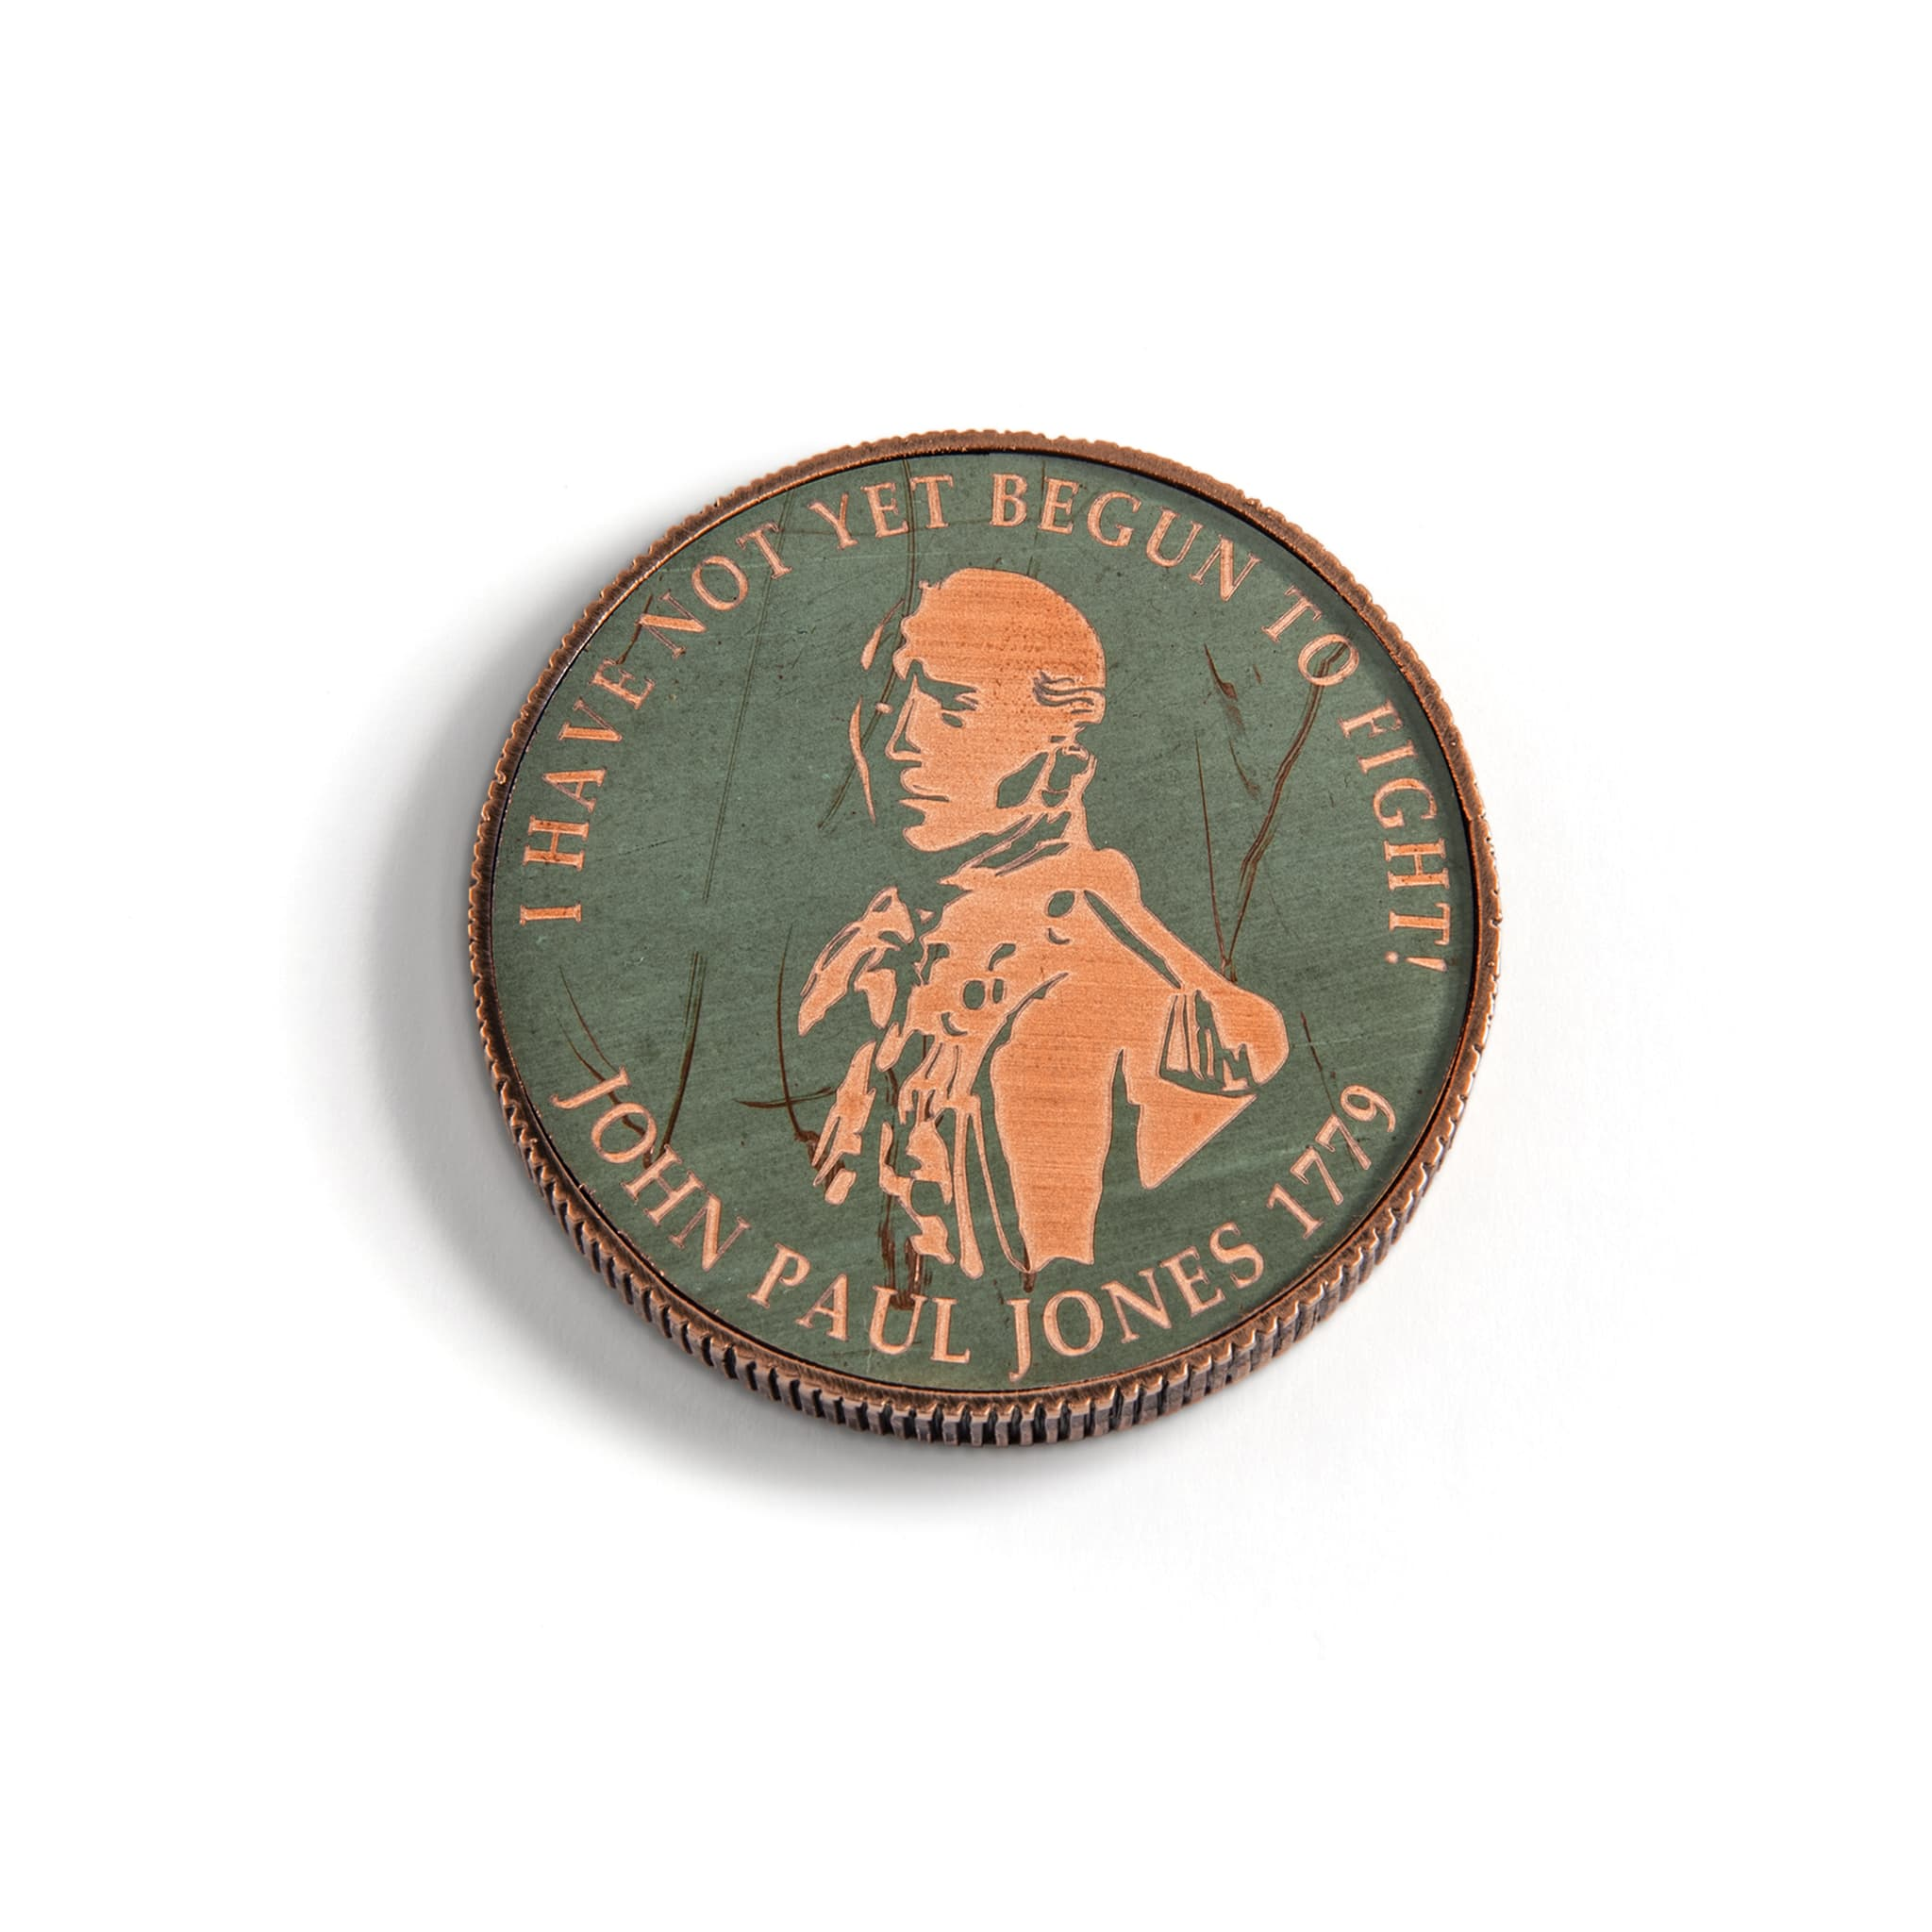 Class of '79 Challenge Coin, John Paul Jones